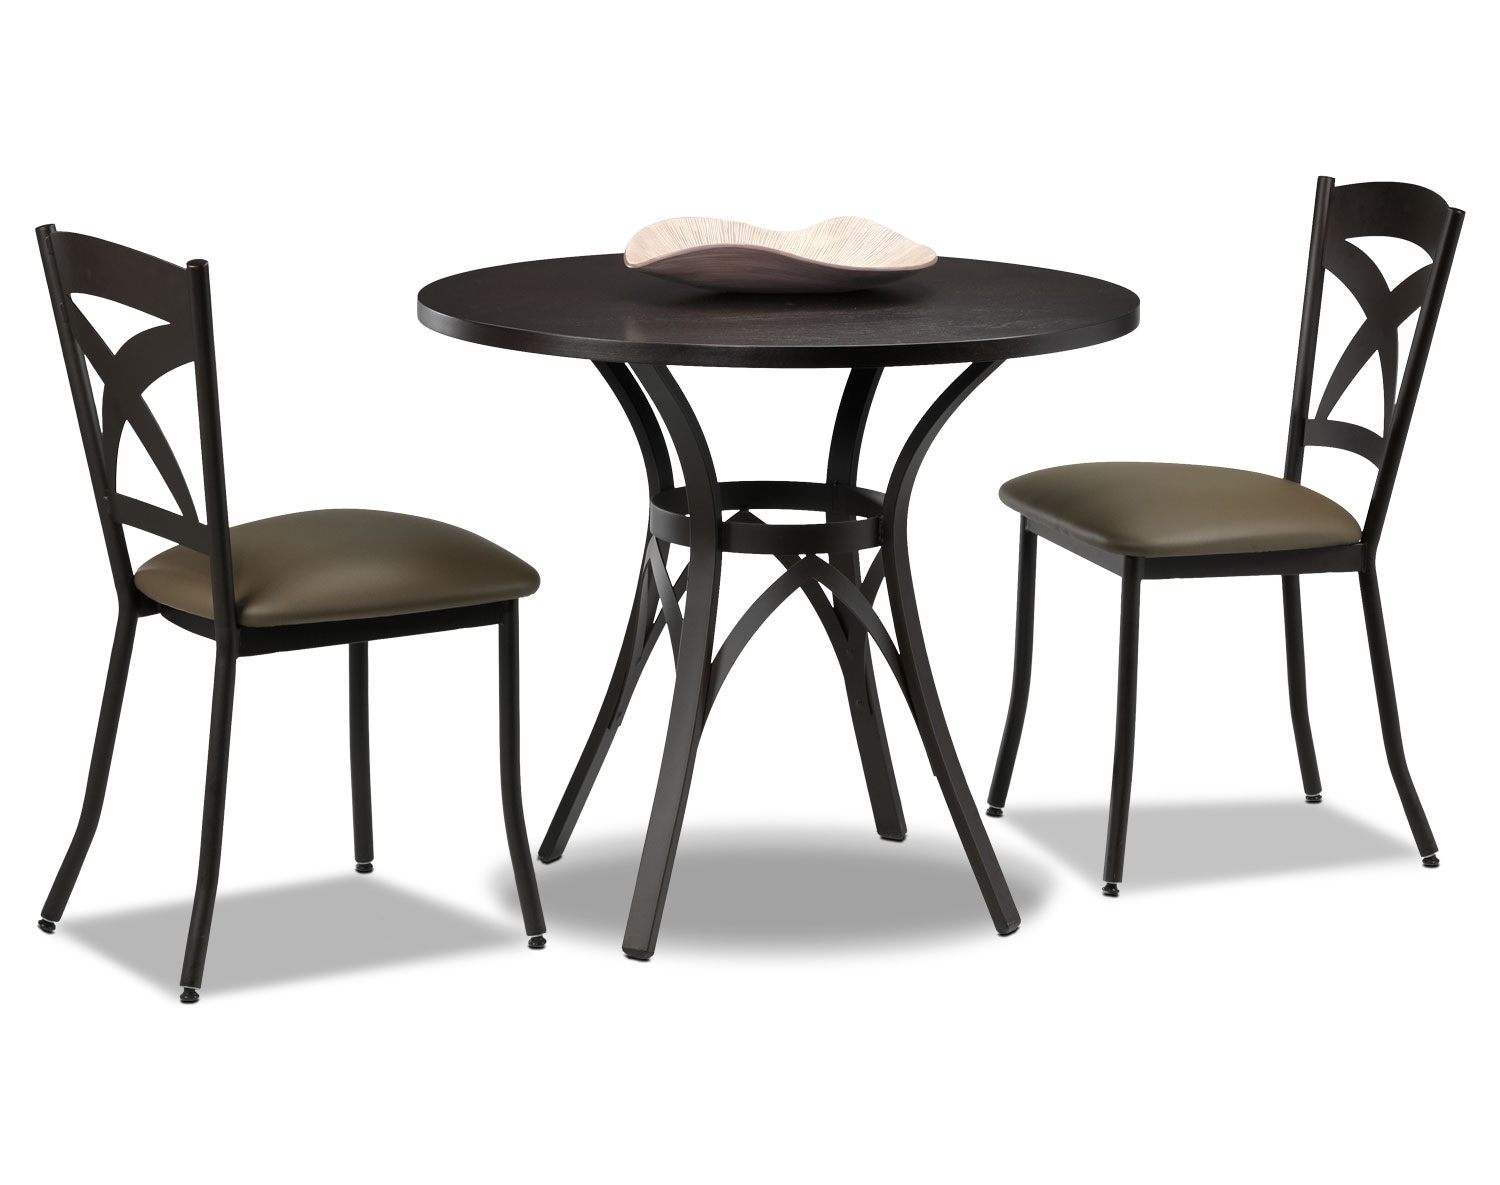 Kai 3-Piece Dinette Set - Brown